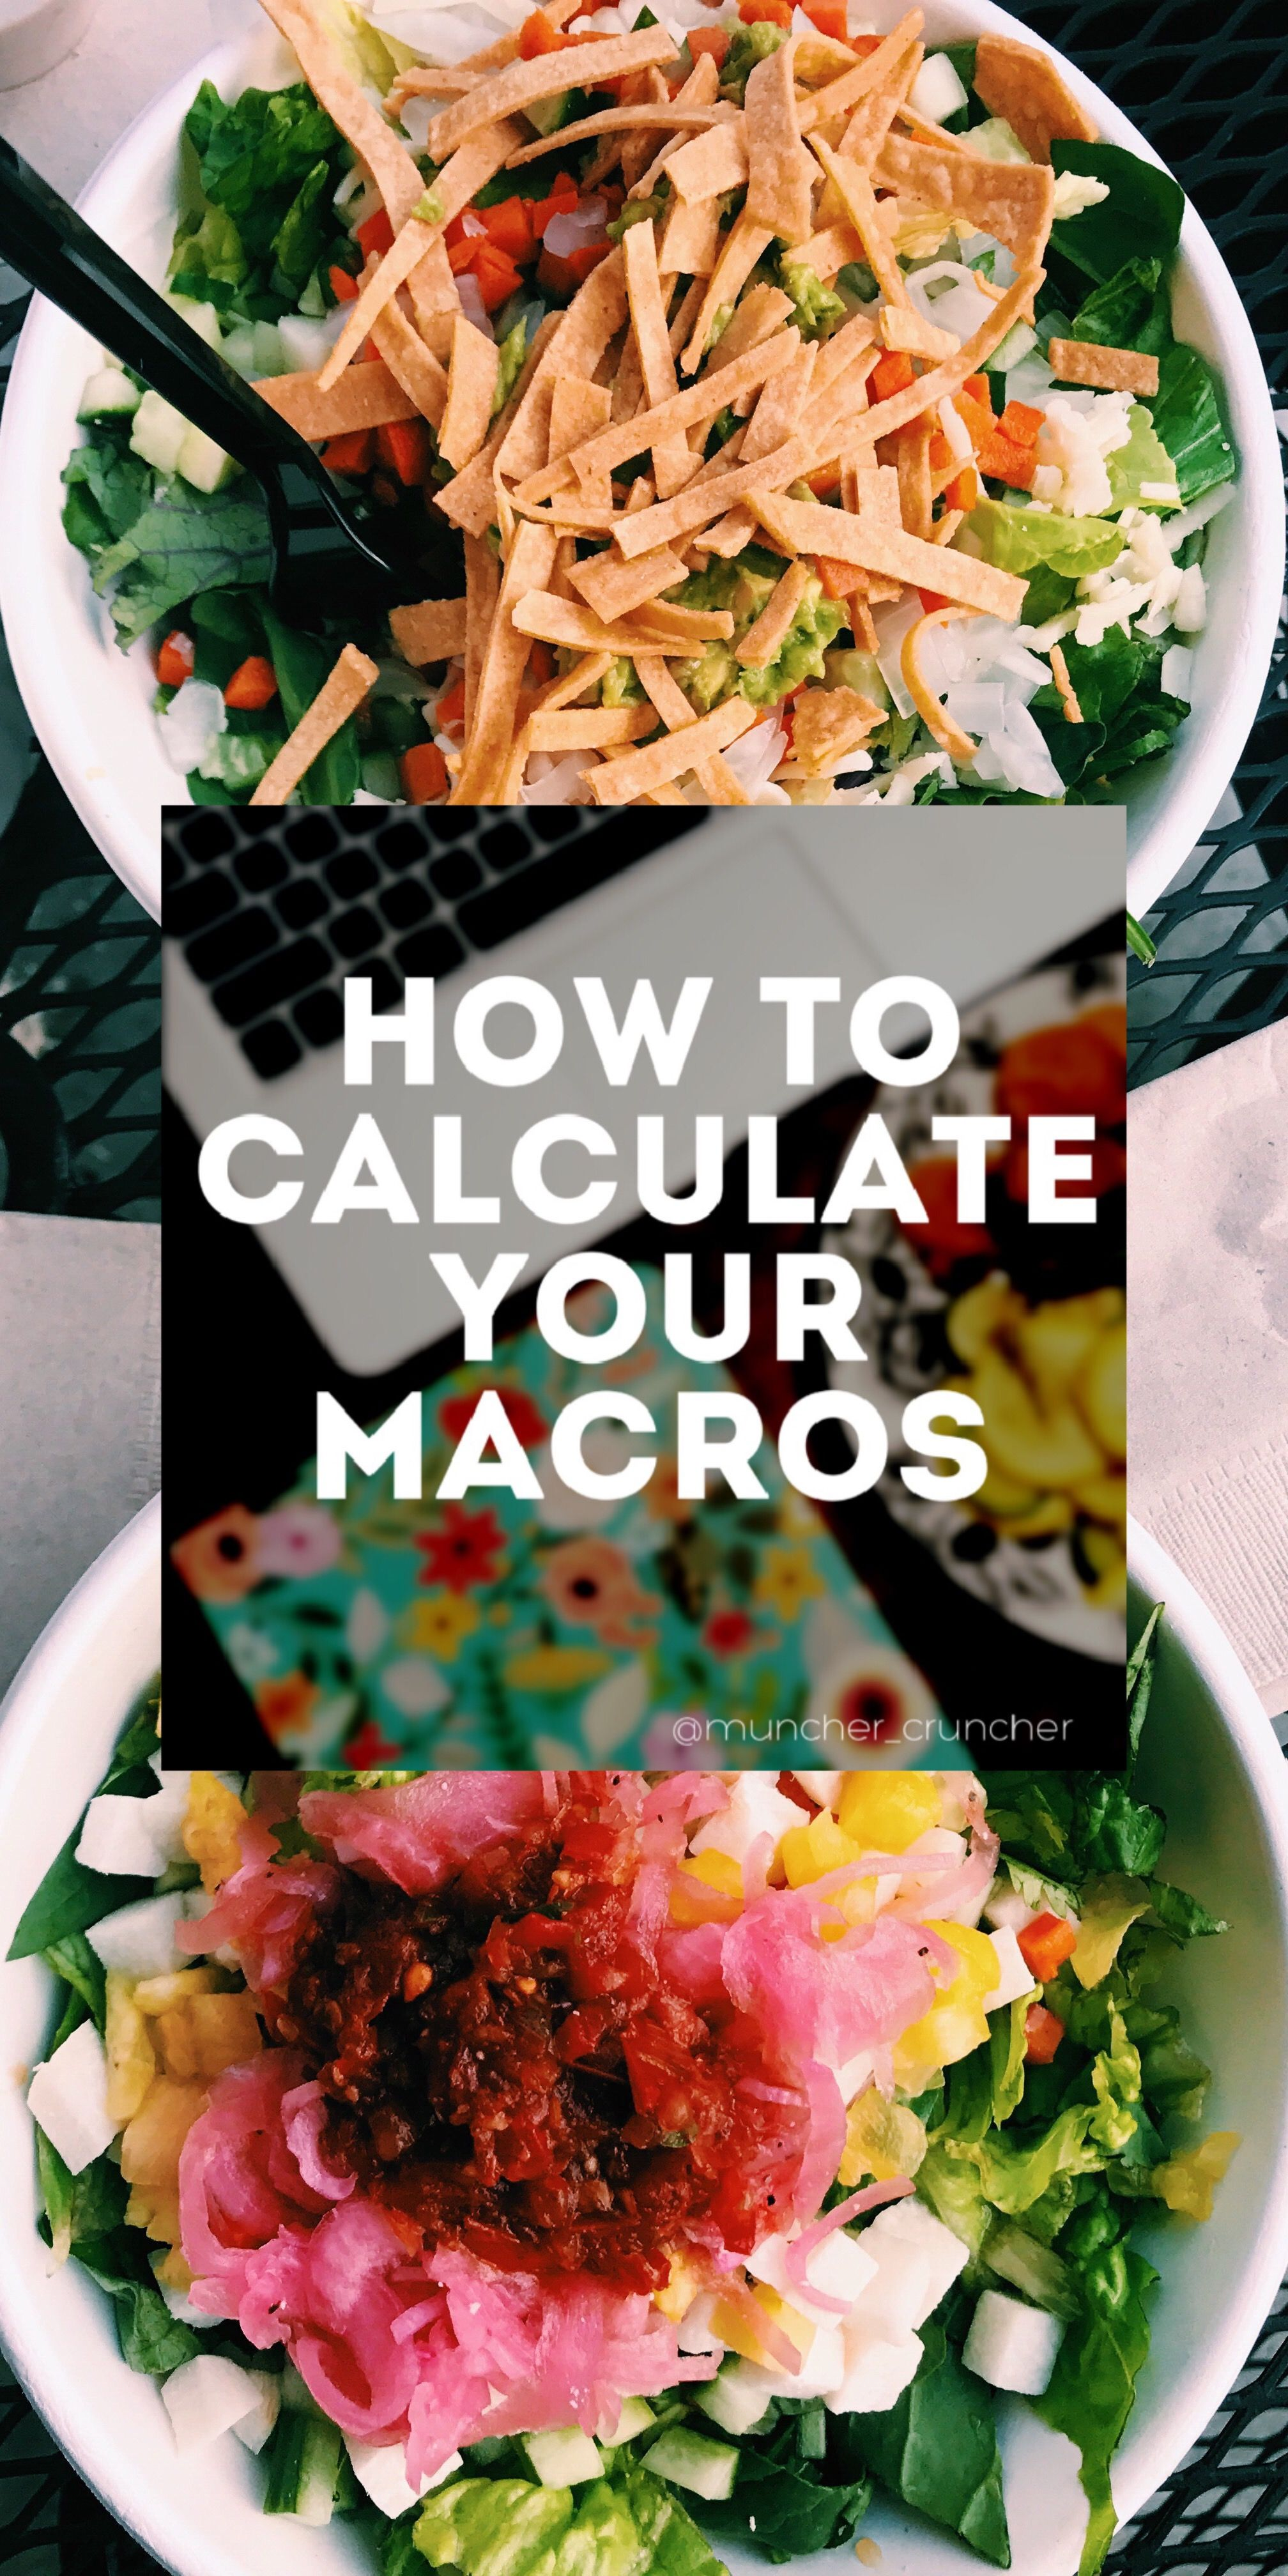 Figure out how to calculate macros macros calculator